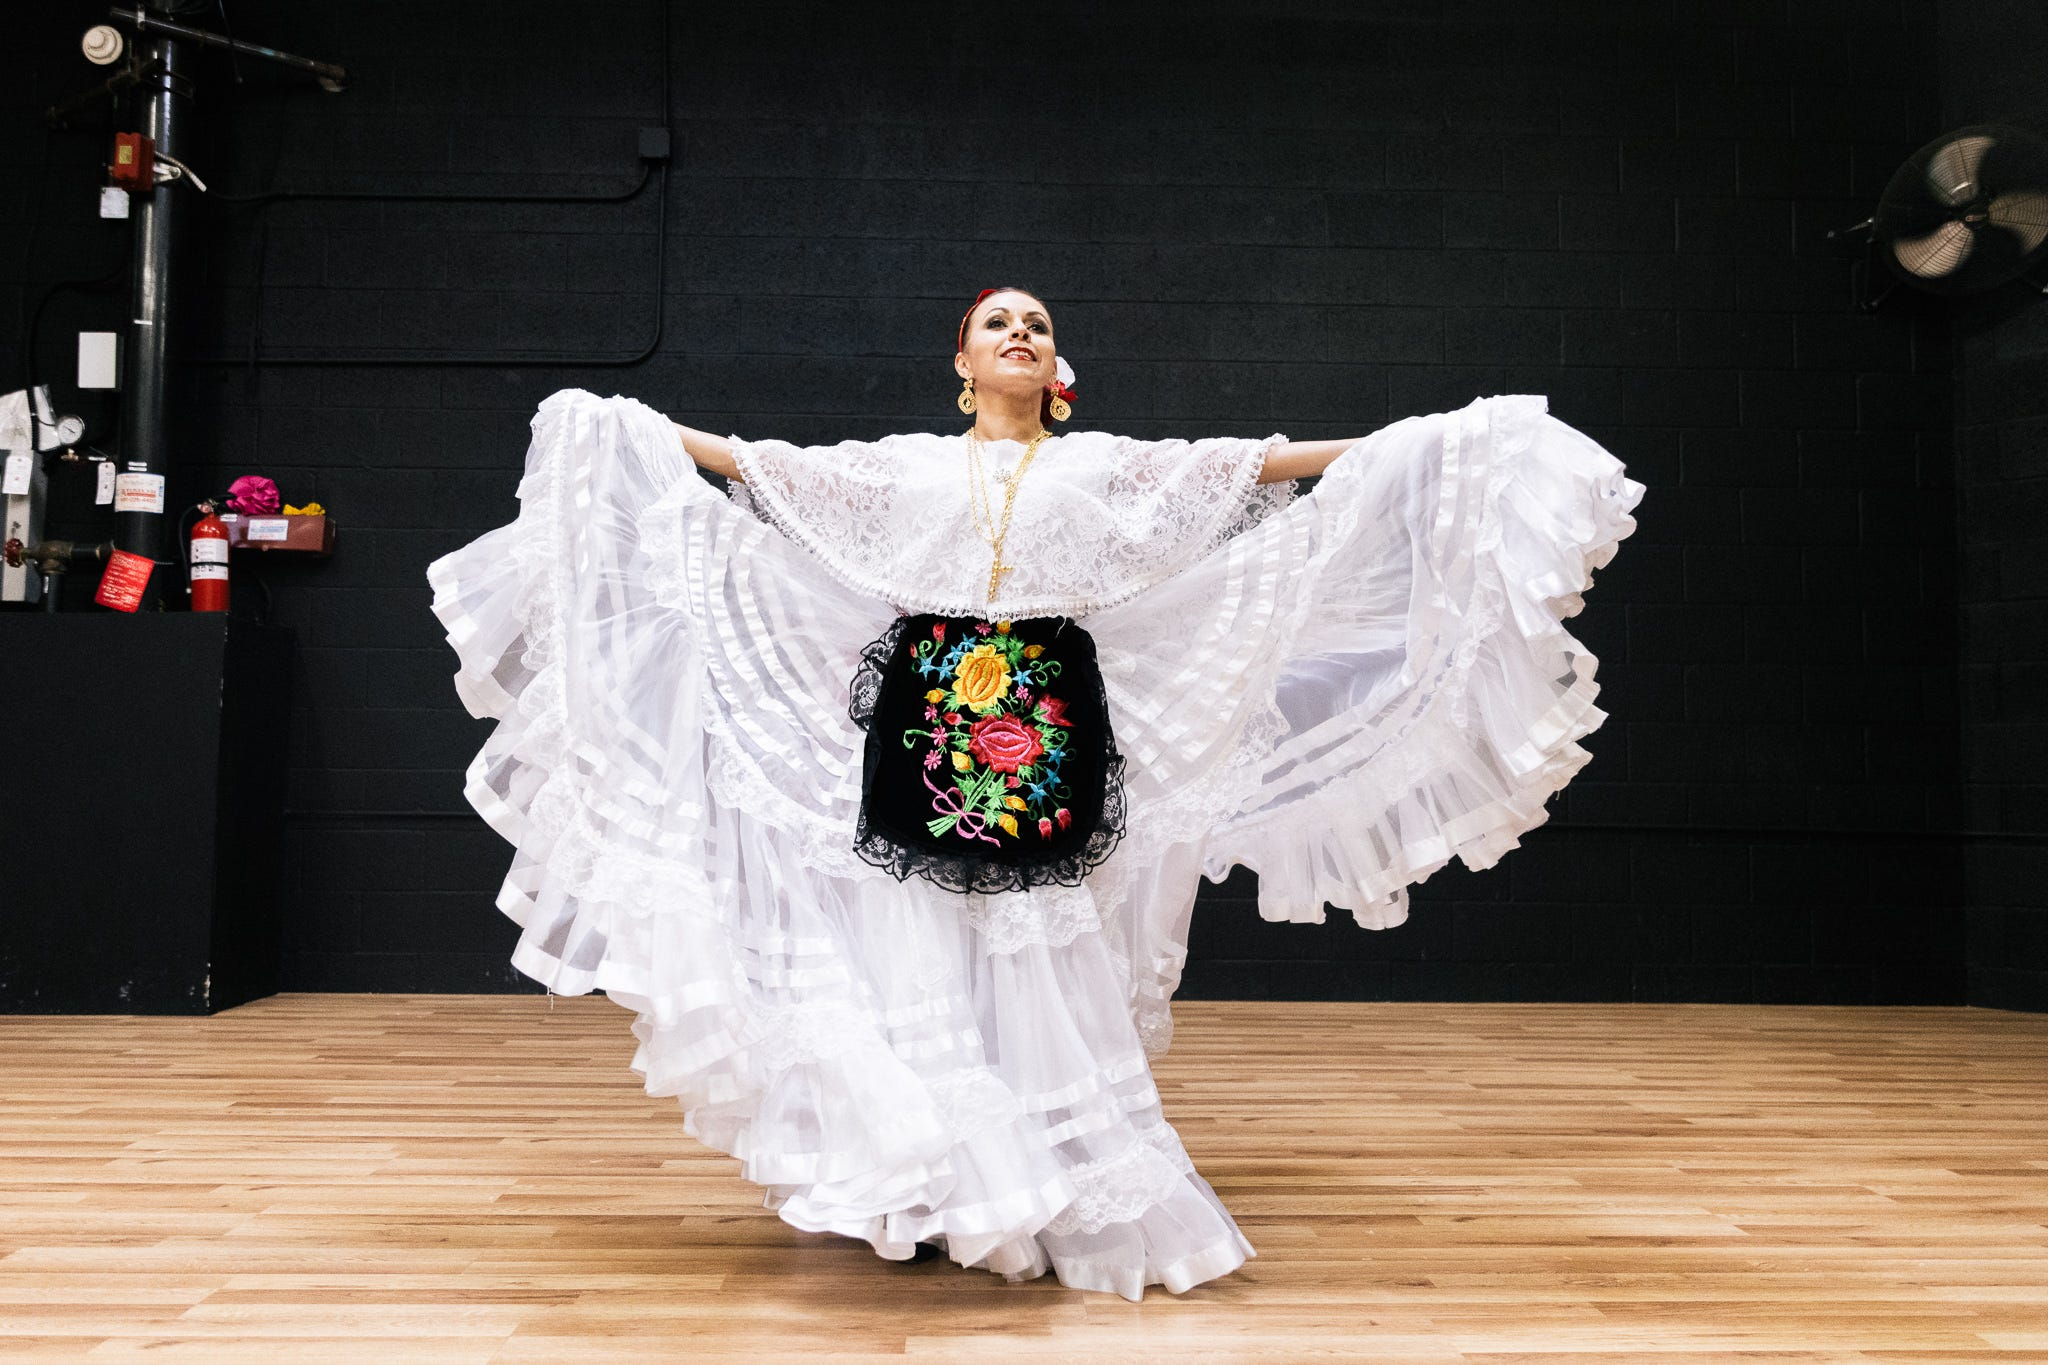 Vanessa Ramírez, director and instructor of the Ballet Folklórico Quetzalli based in Mesa, said that the important thing is to transmit Mexican culture, customs and folklore through the dance she teaches, keeping the Mexican custom alive in Arizona.